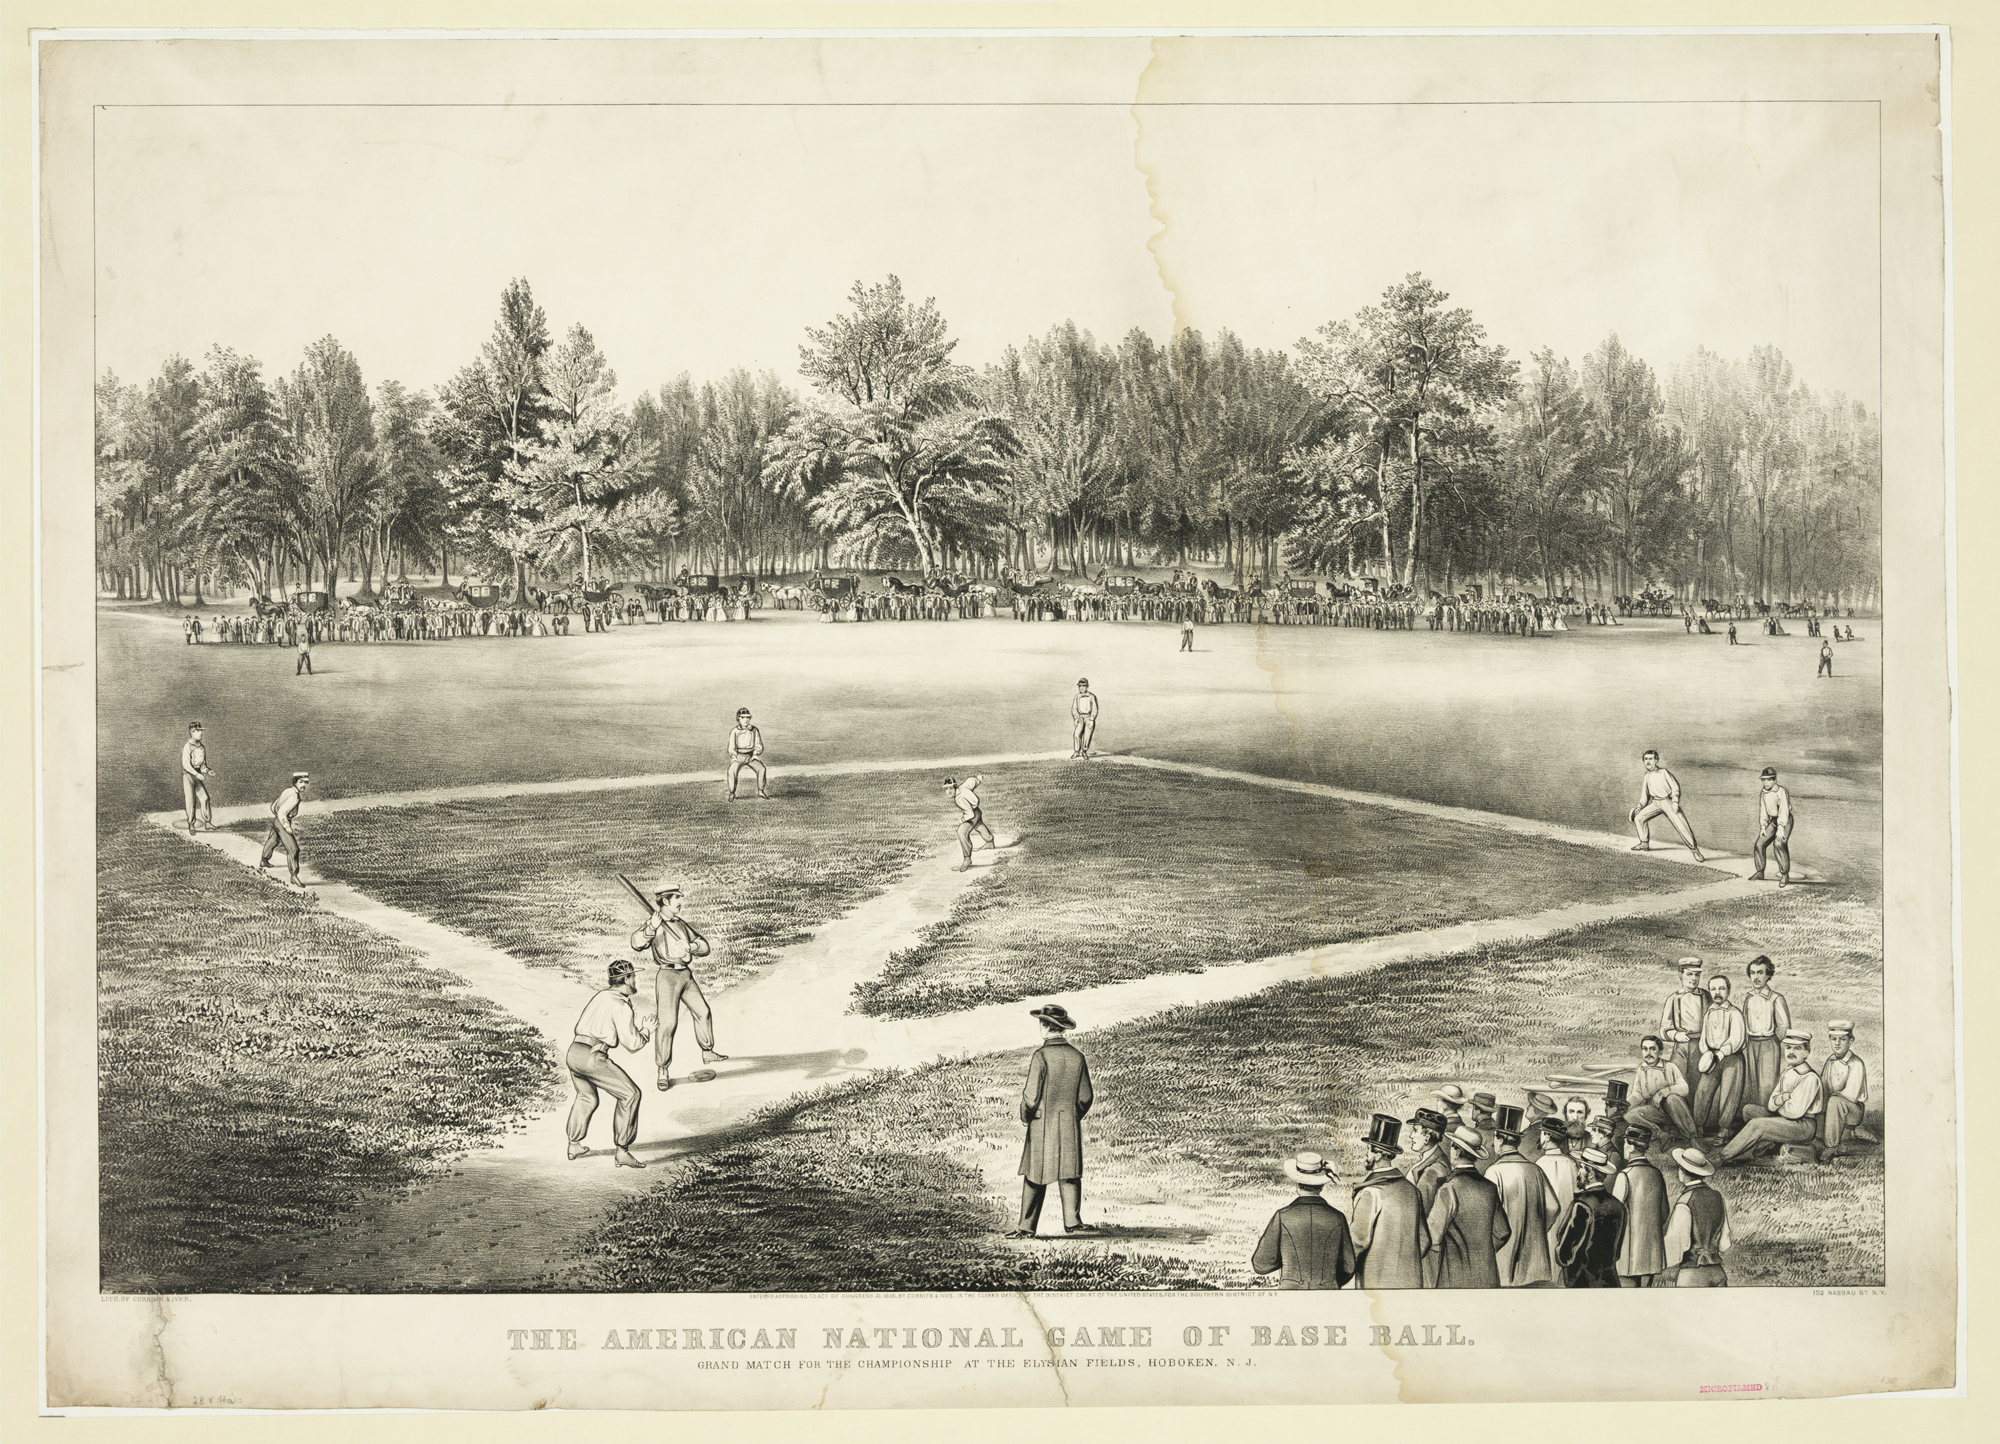 The American National Game of Base Ball. Currier & Ives Lithograph